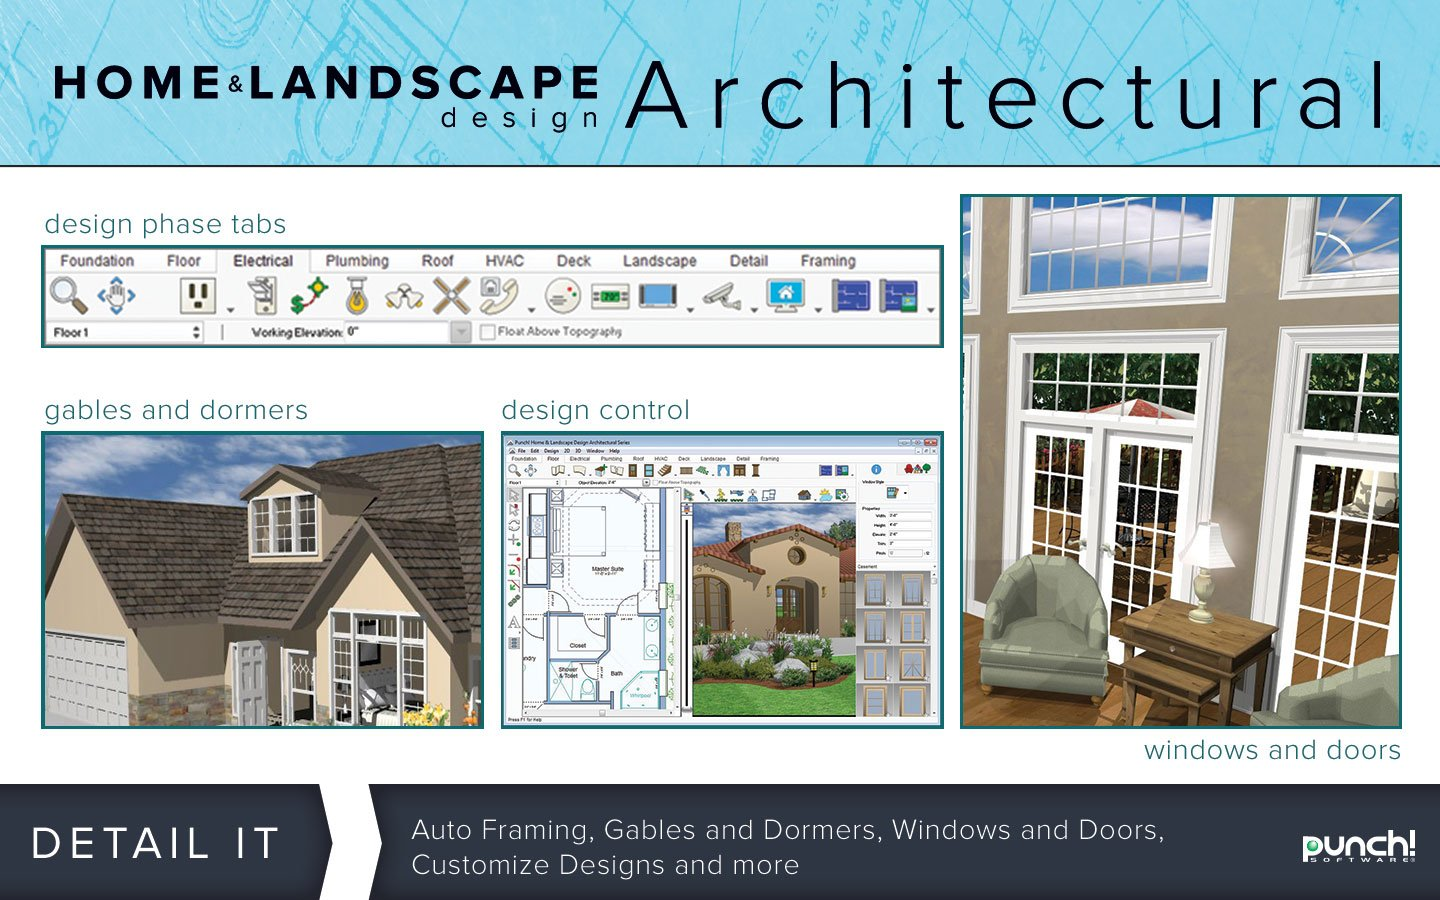 Superb Amazon.com: Punch! Home U0026 Landscape Design Architectural Series V18 .